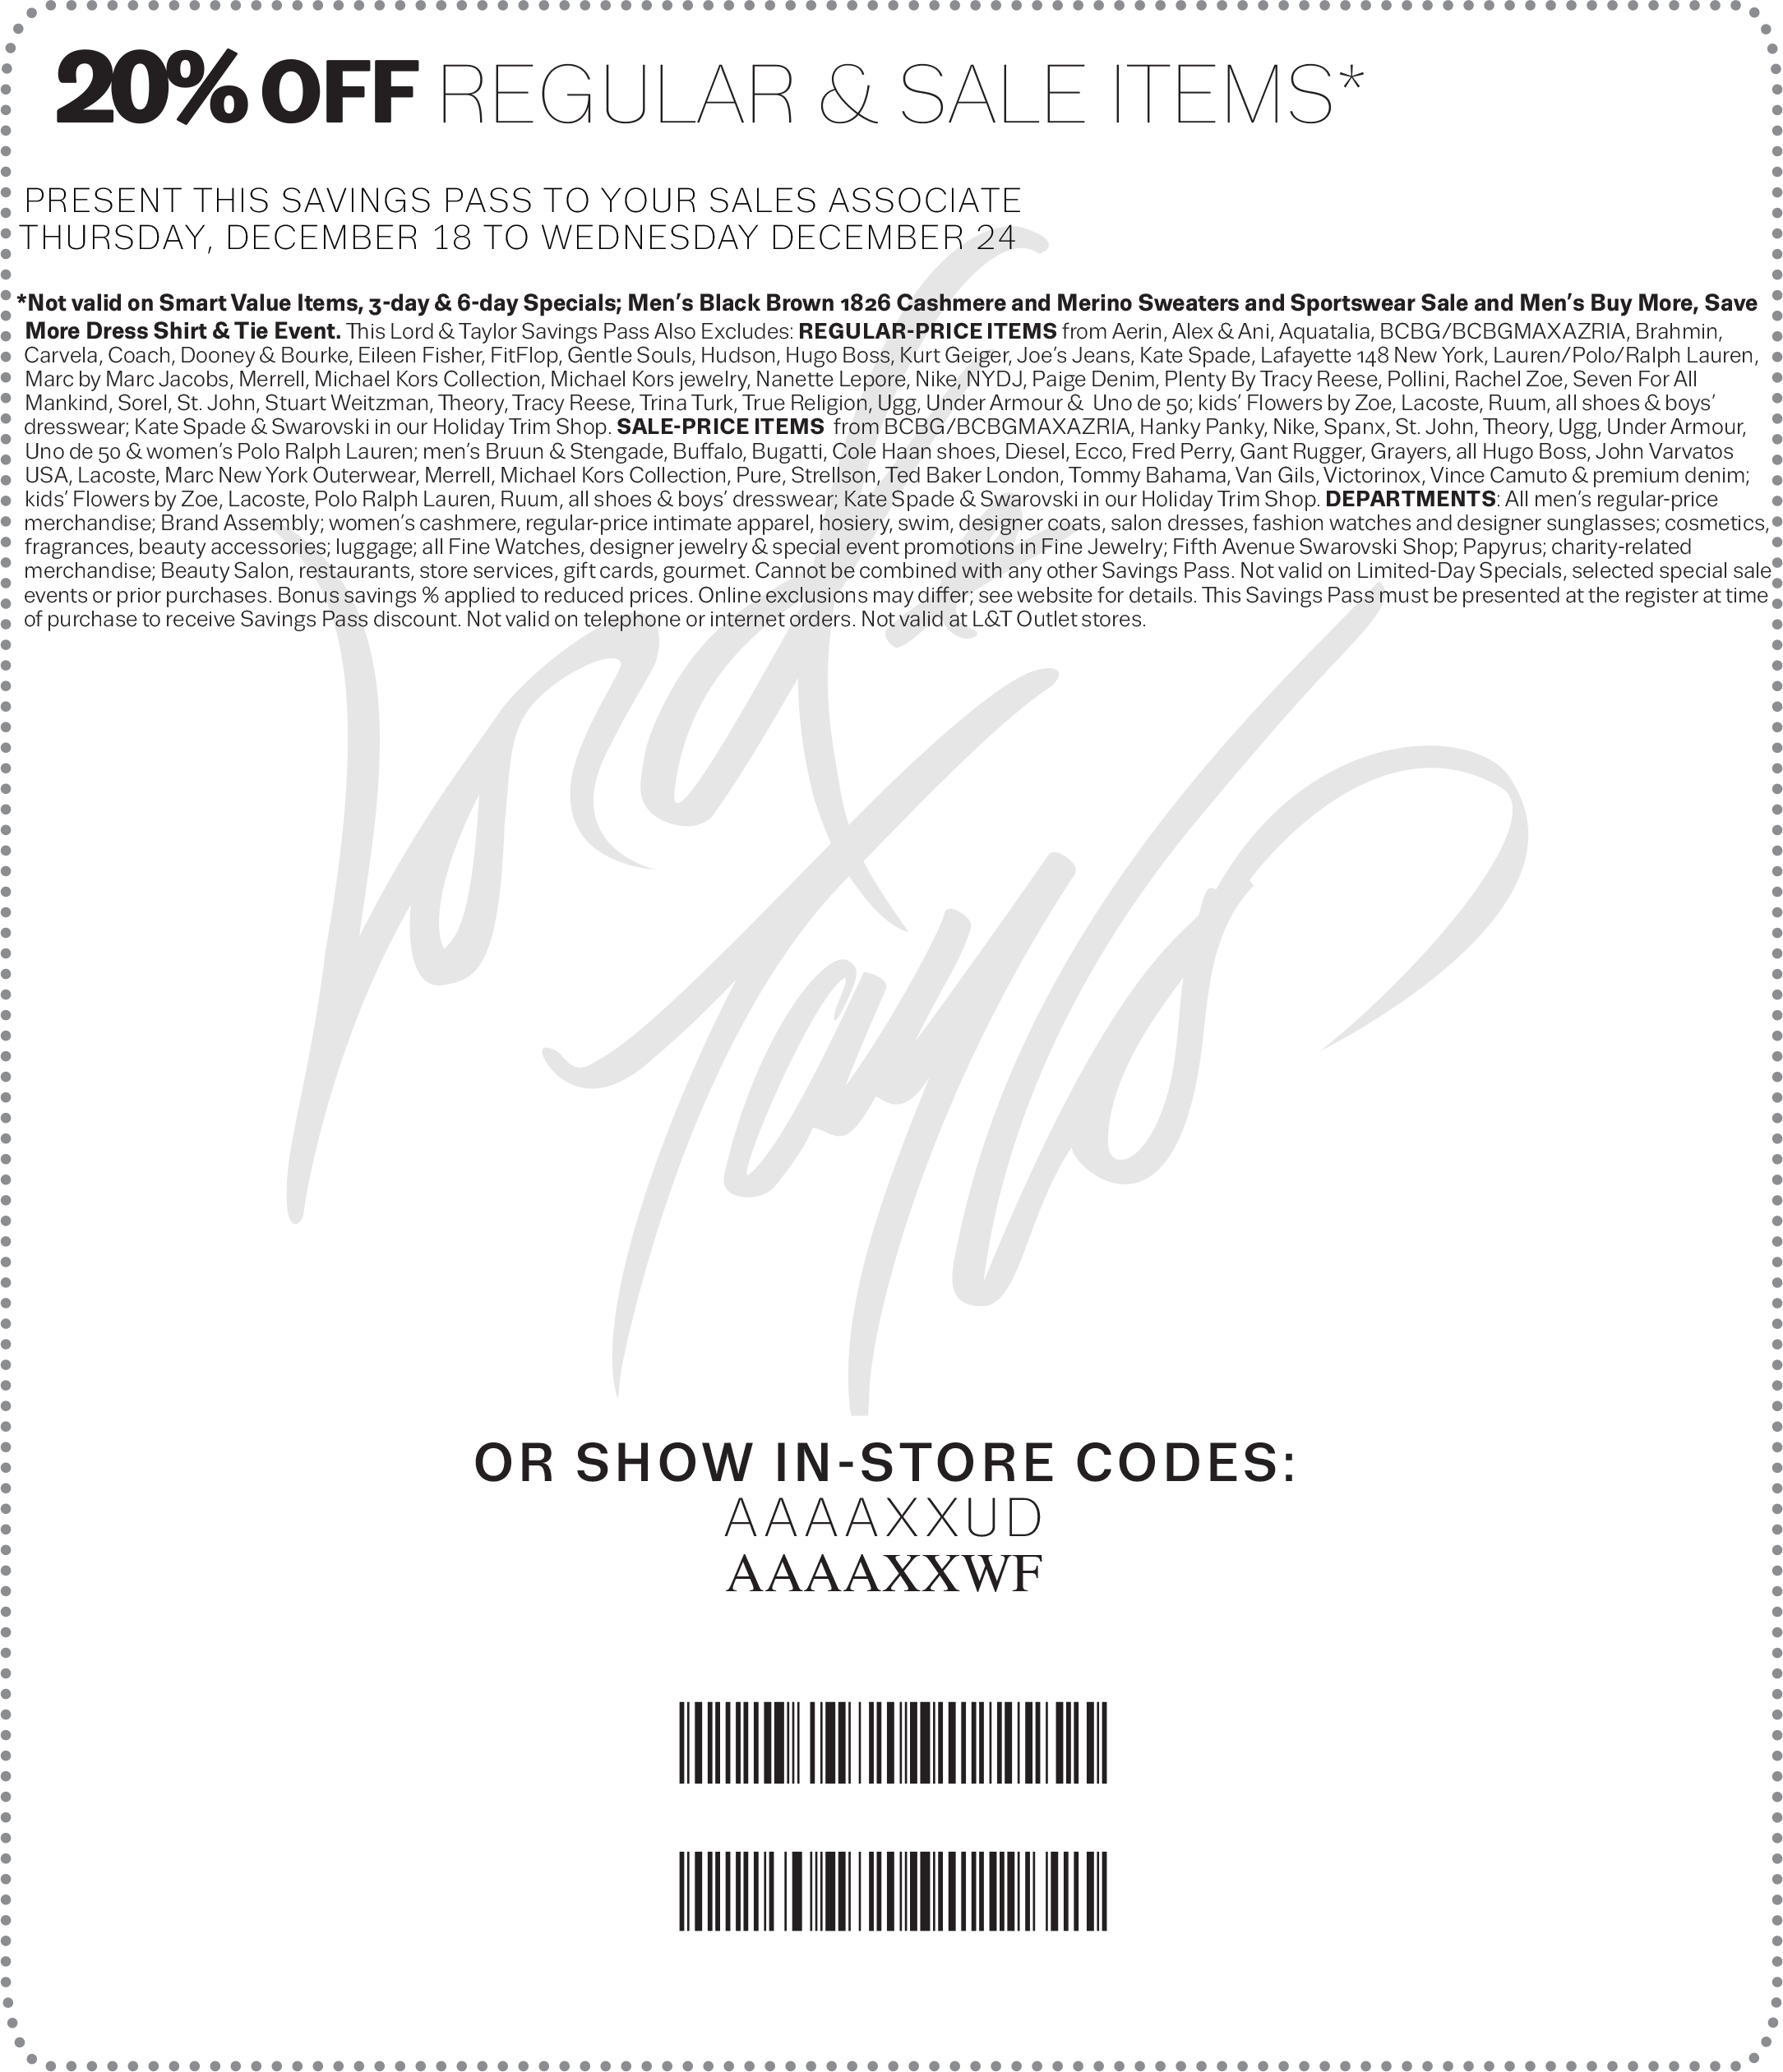 Lord & Taylor Coupon April 2018 20% off at Lord & Taylor, or online via promo code GIFT